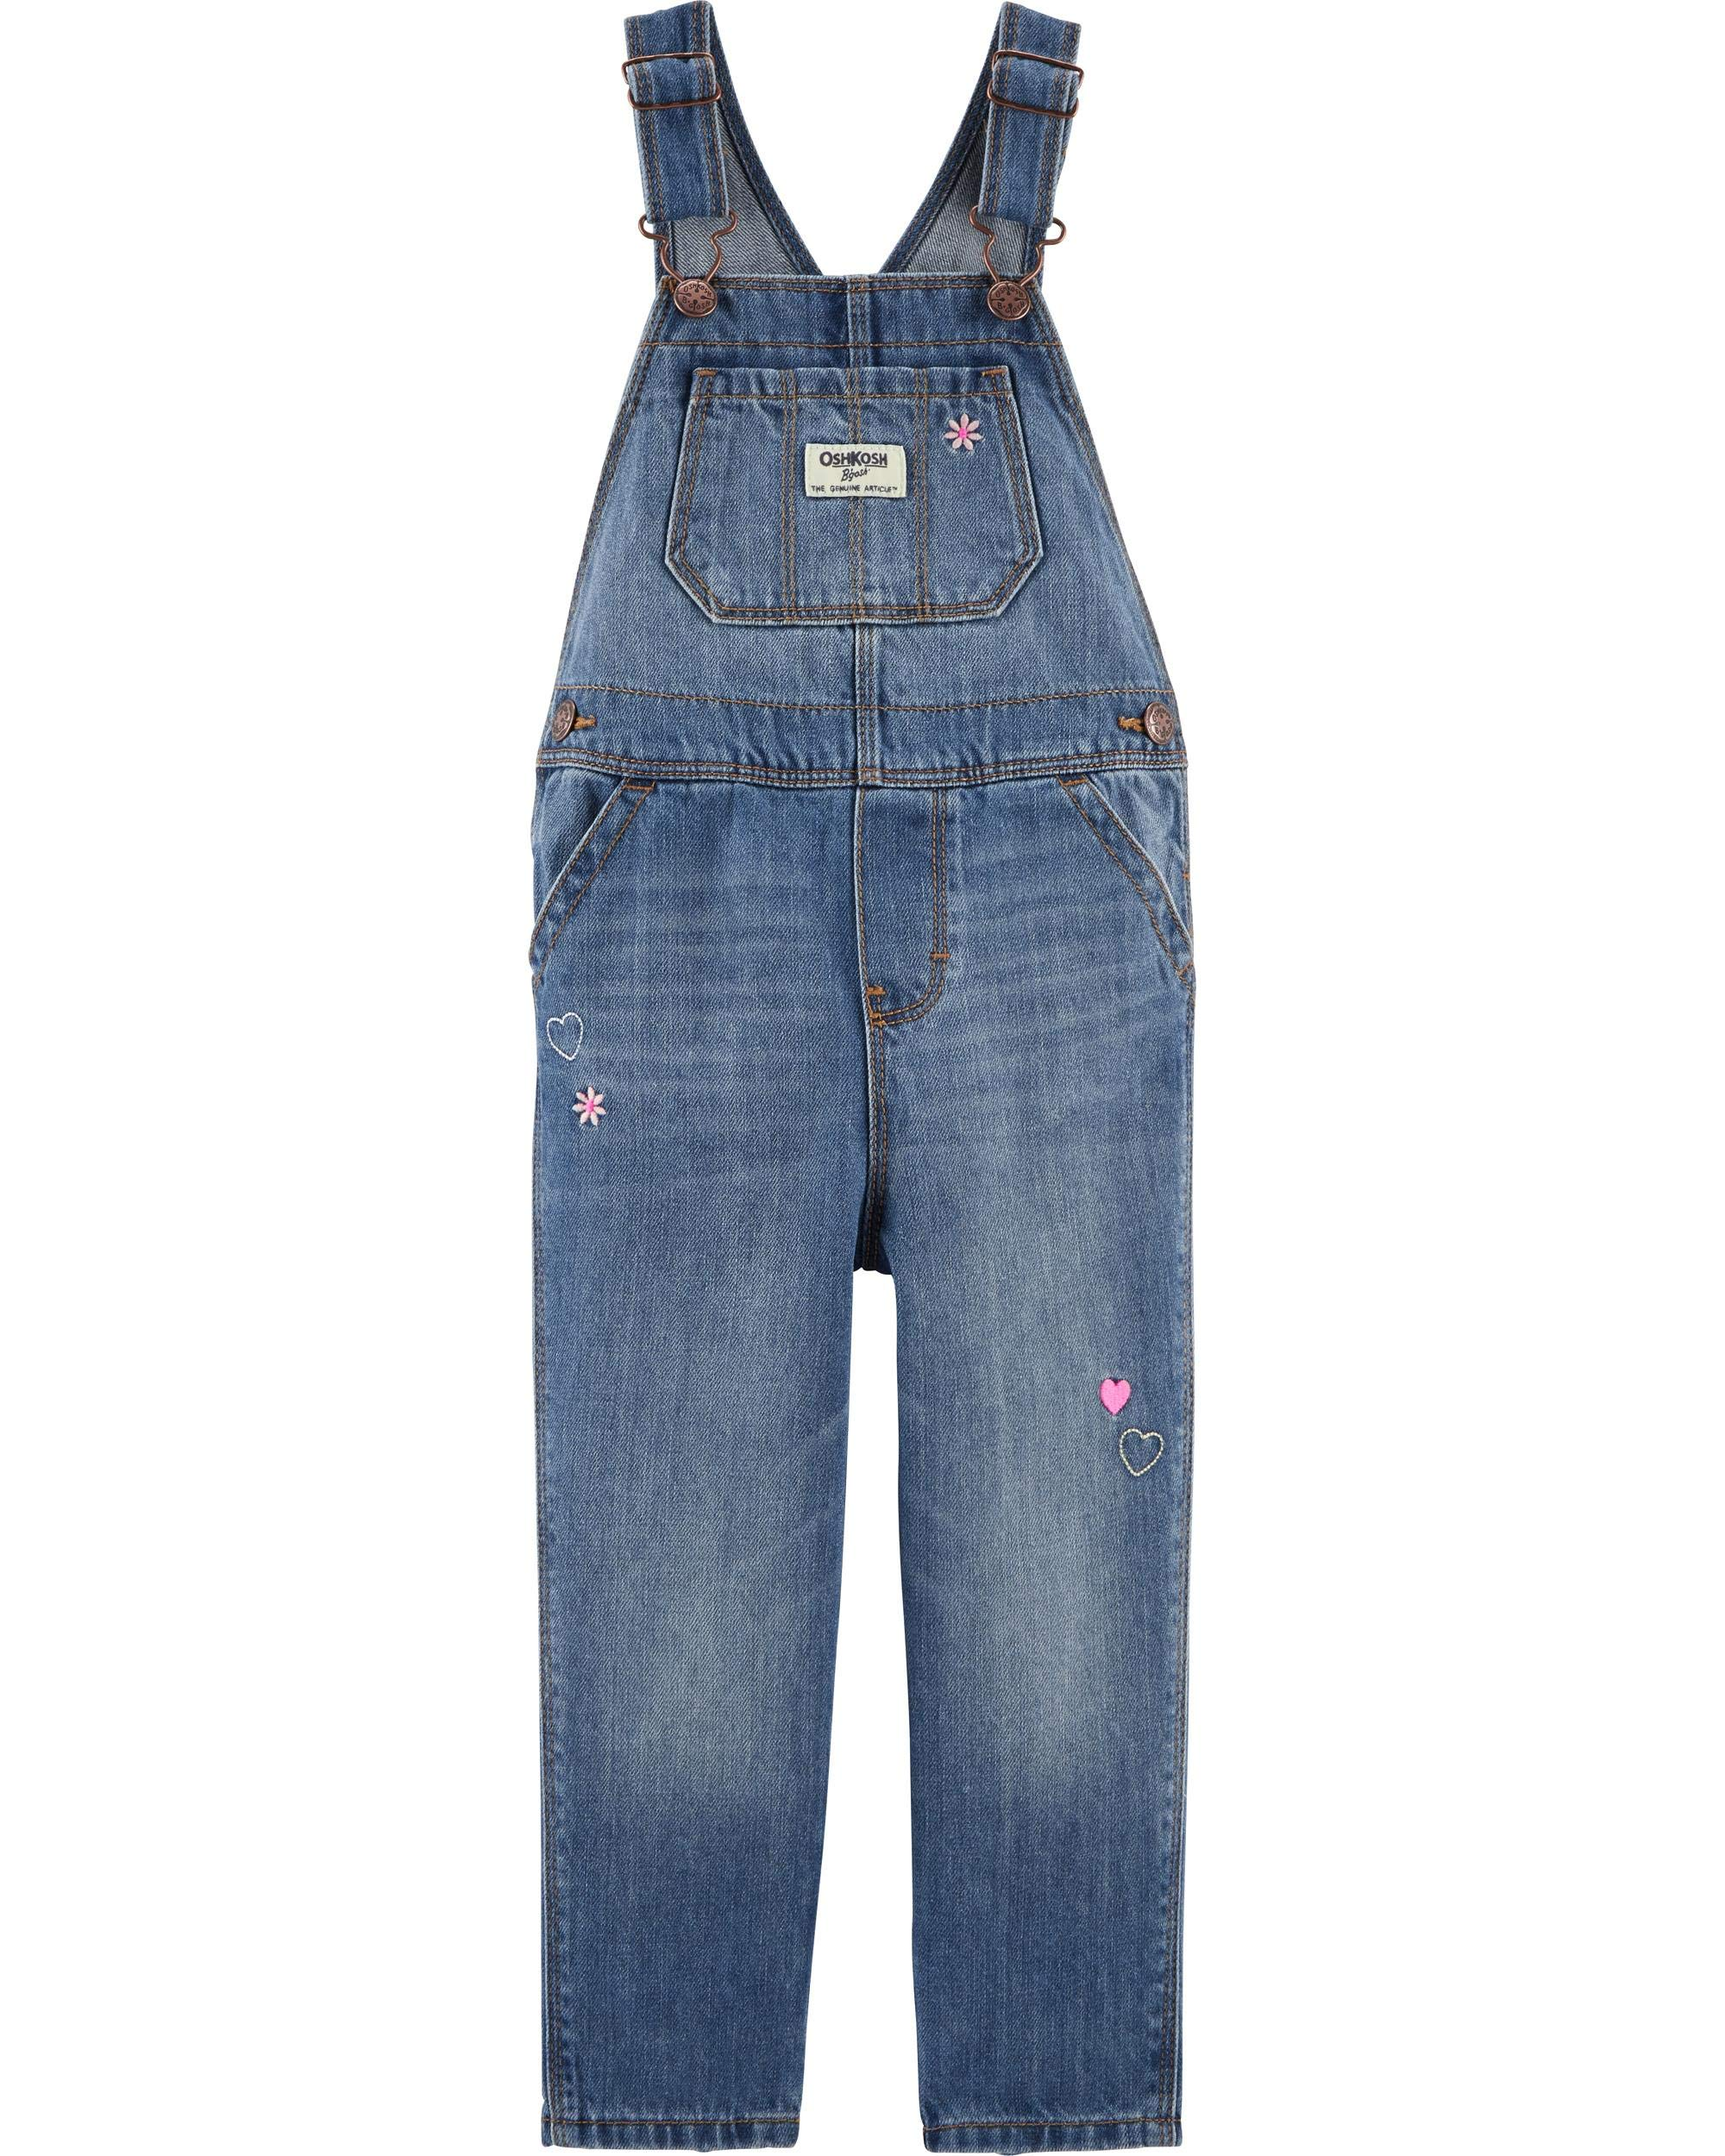 YOUNGER TREE Toddler Kids Baby Girls Rompers One Piece Denim Short Overalls Bow Ruffled Jumpsuit 1-5T